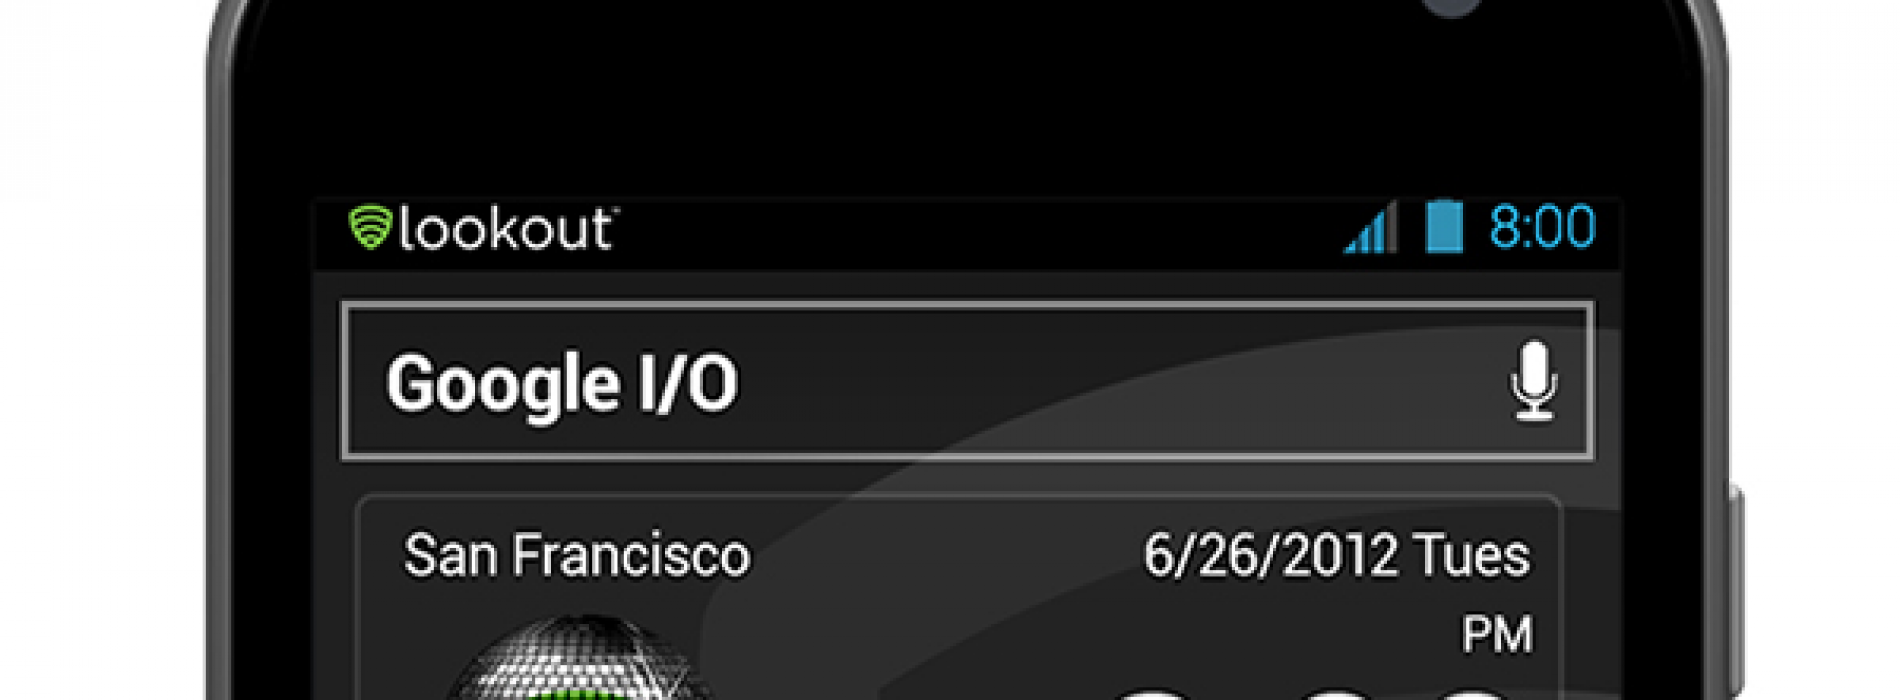 Party Your Apps Off with Lookout on eve of Google I/O! (WIN A FREE TICKET)